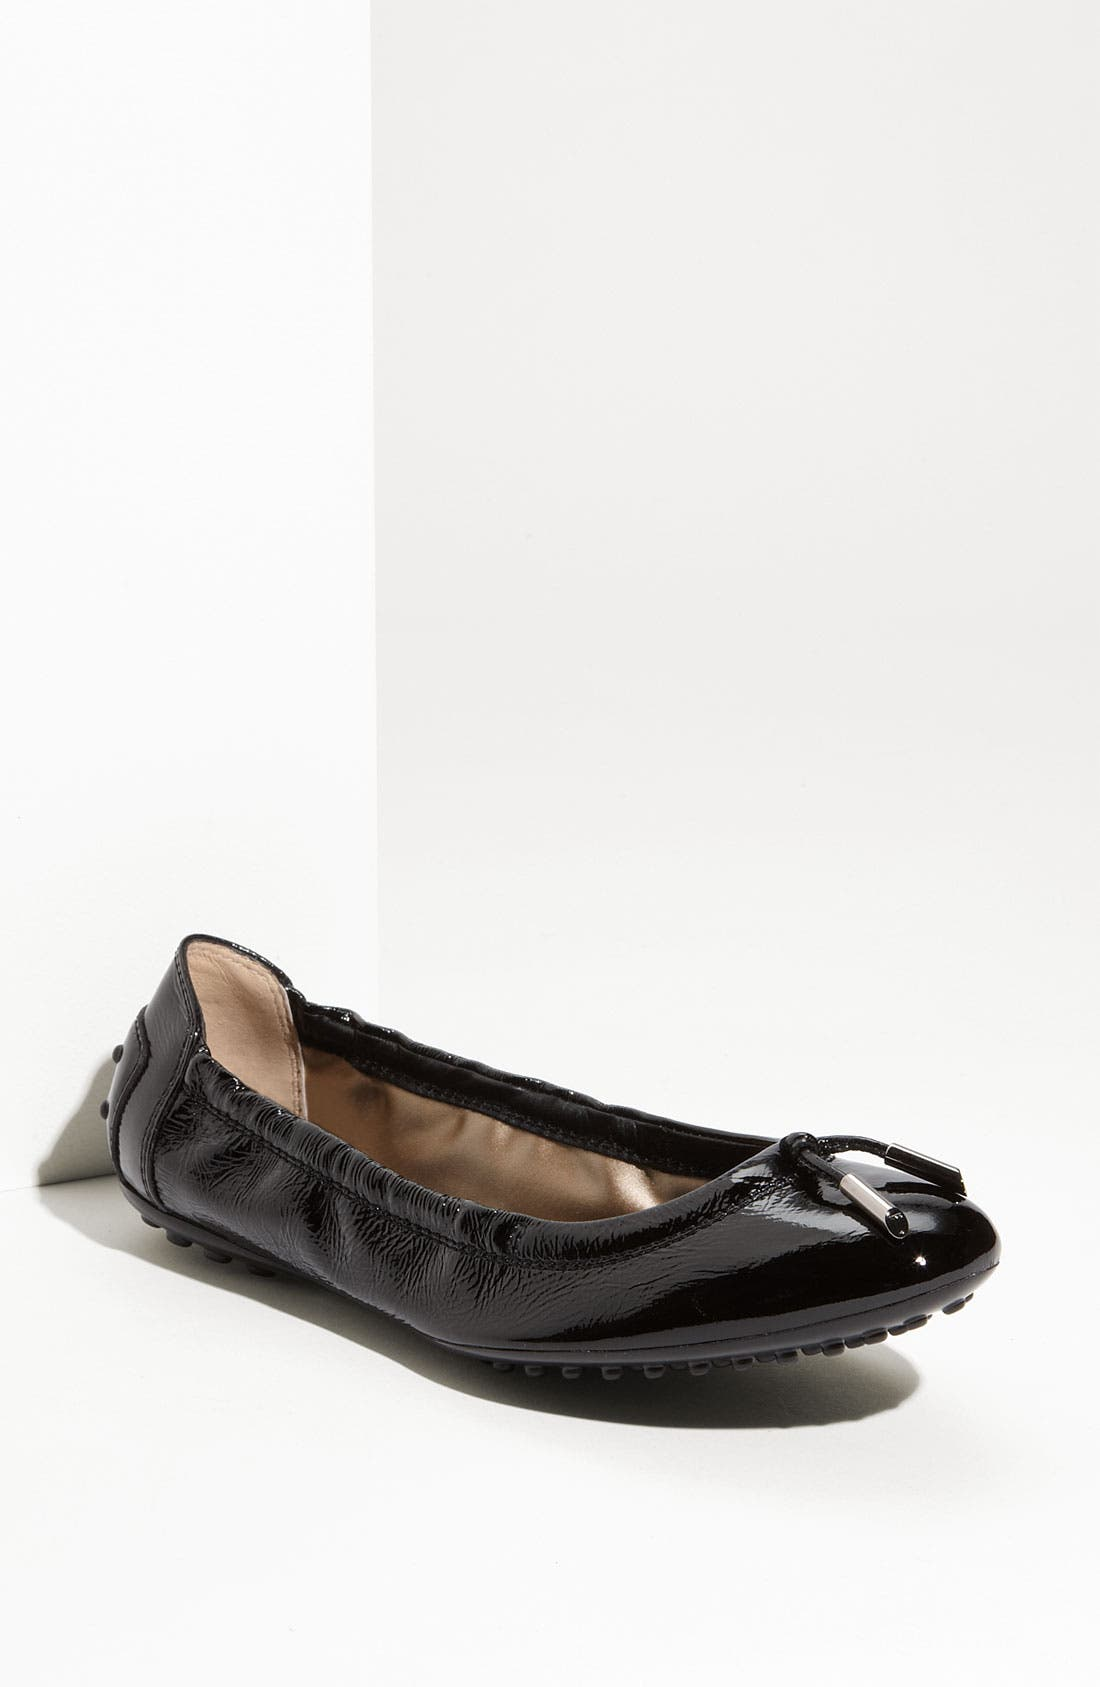 Main Image - Tod's Bow Trim Patent Leather Flat